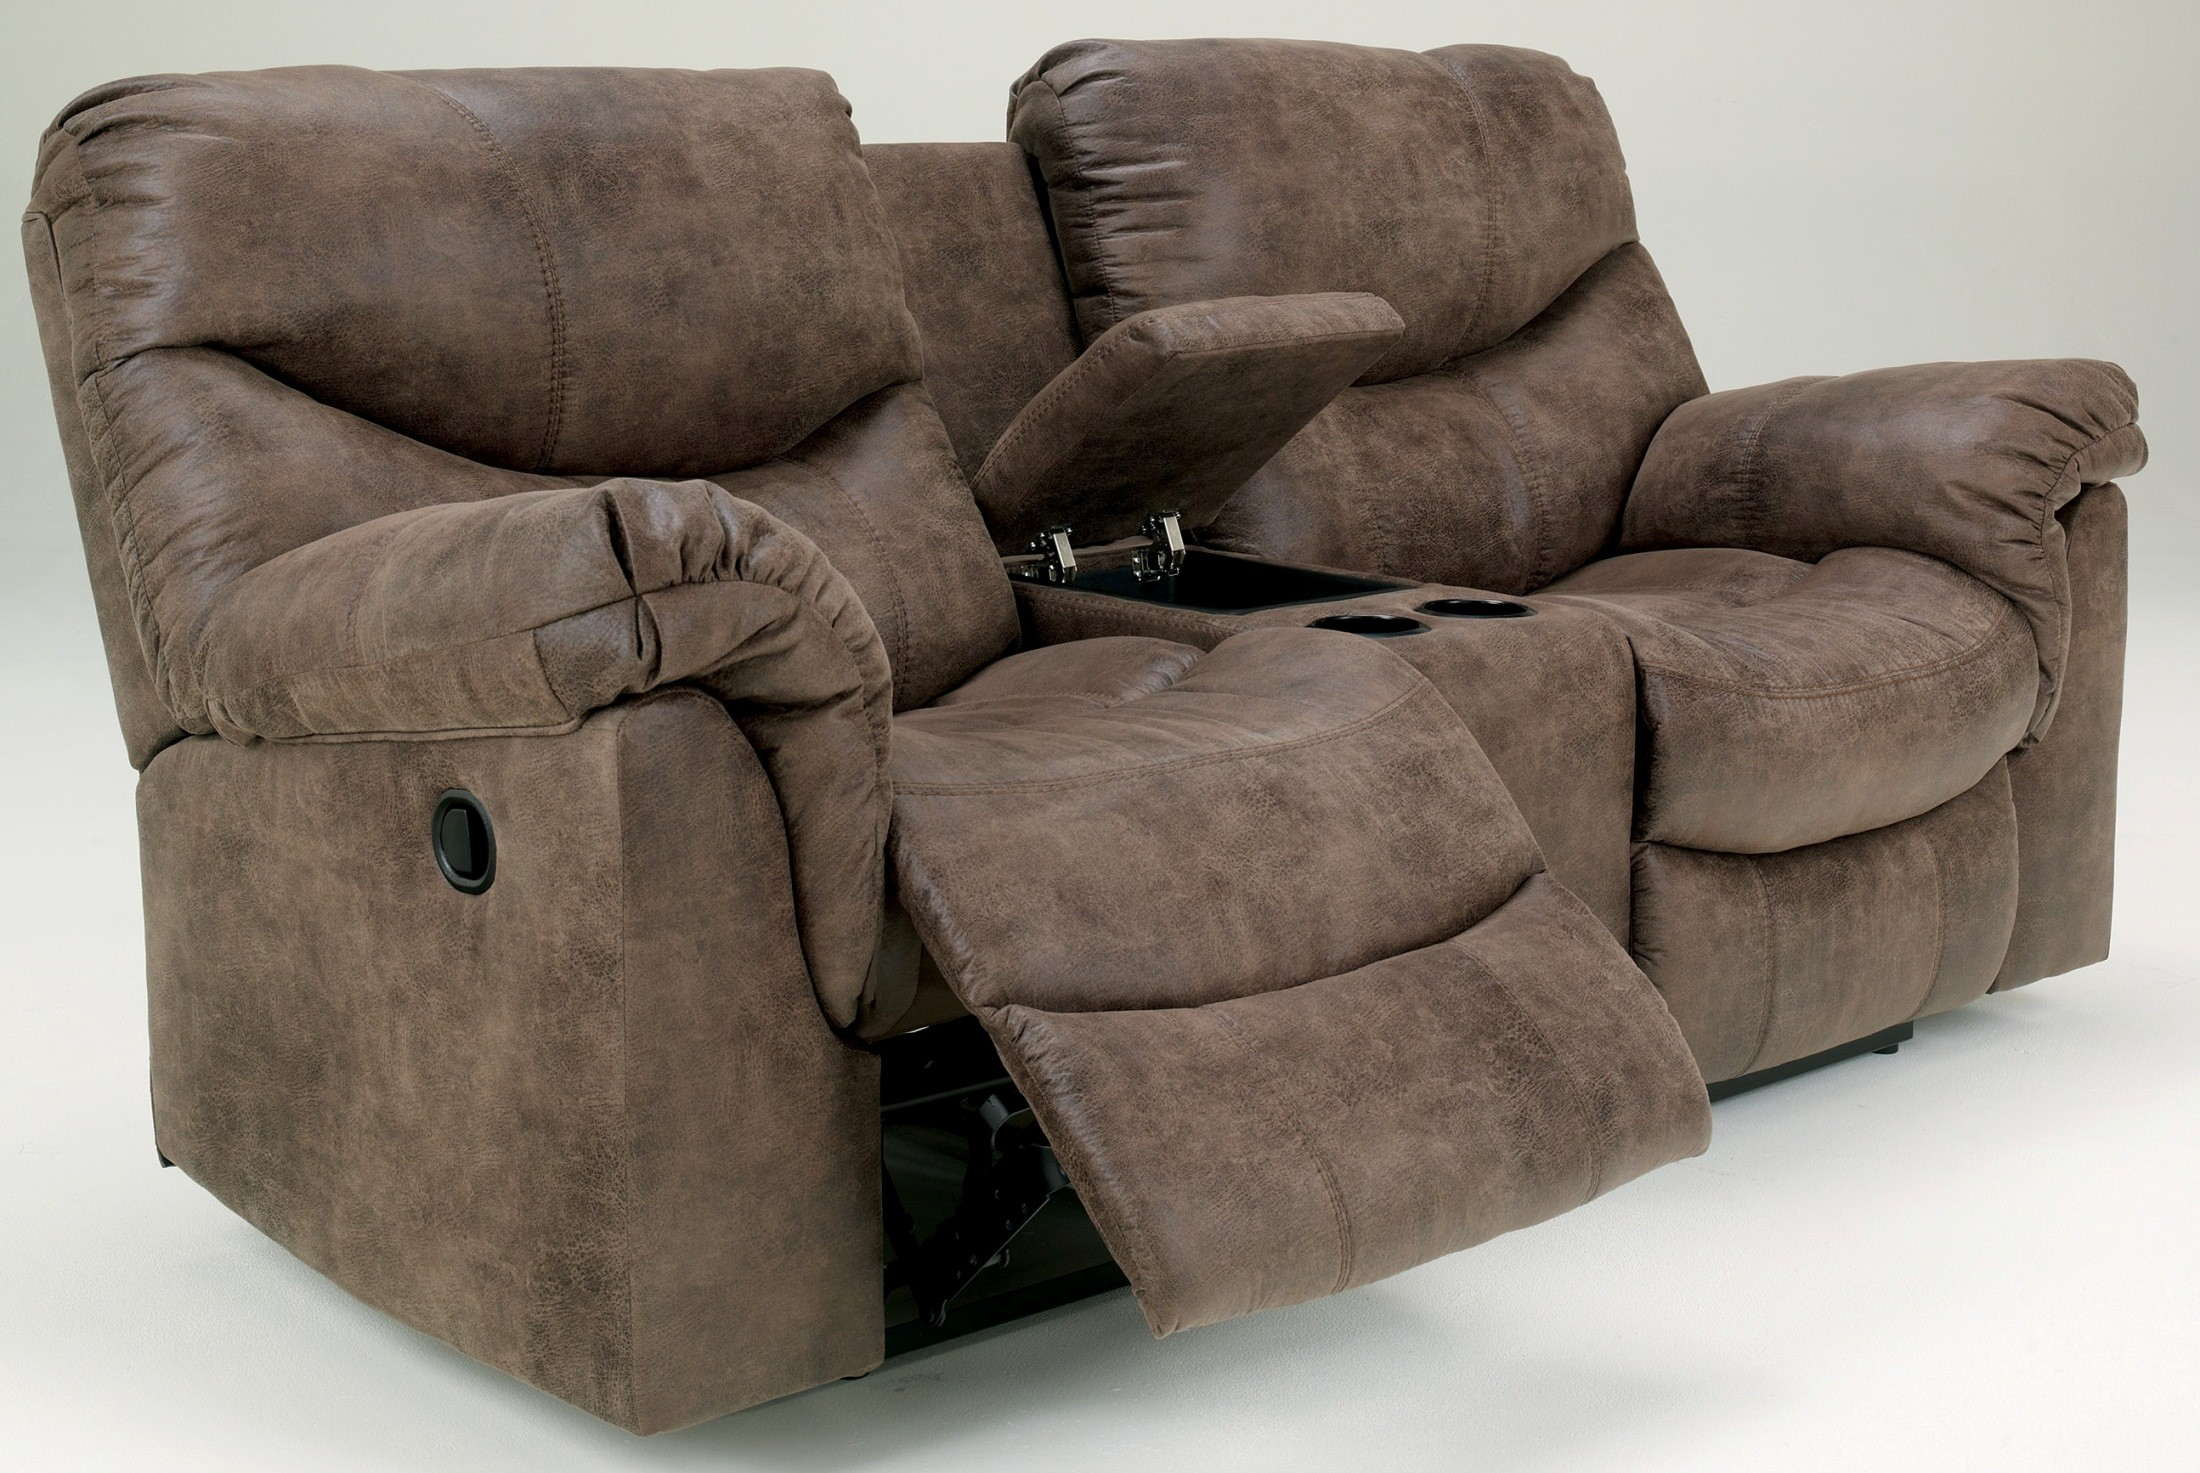 Sofa Set Sale In Jamshedpur Alzena Double Power Reclining Loveseat With Console From